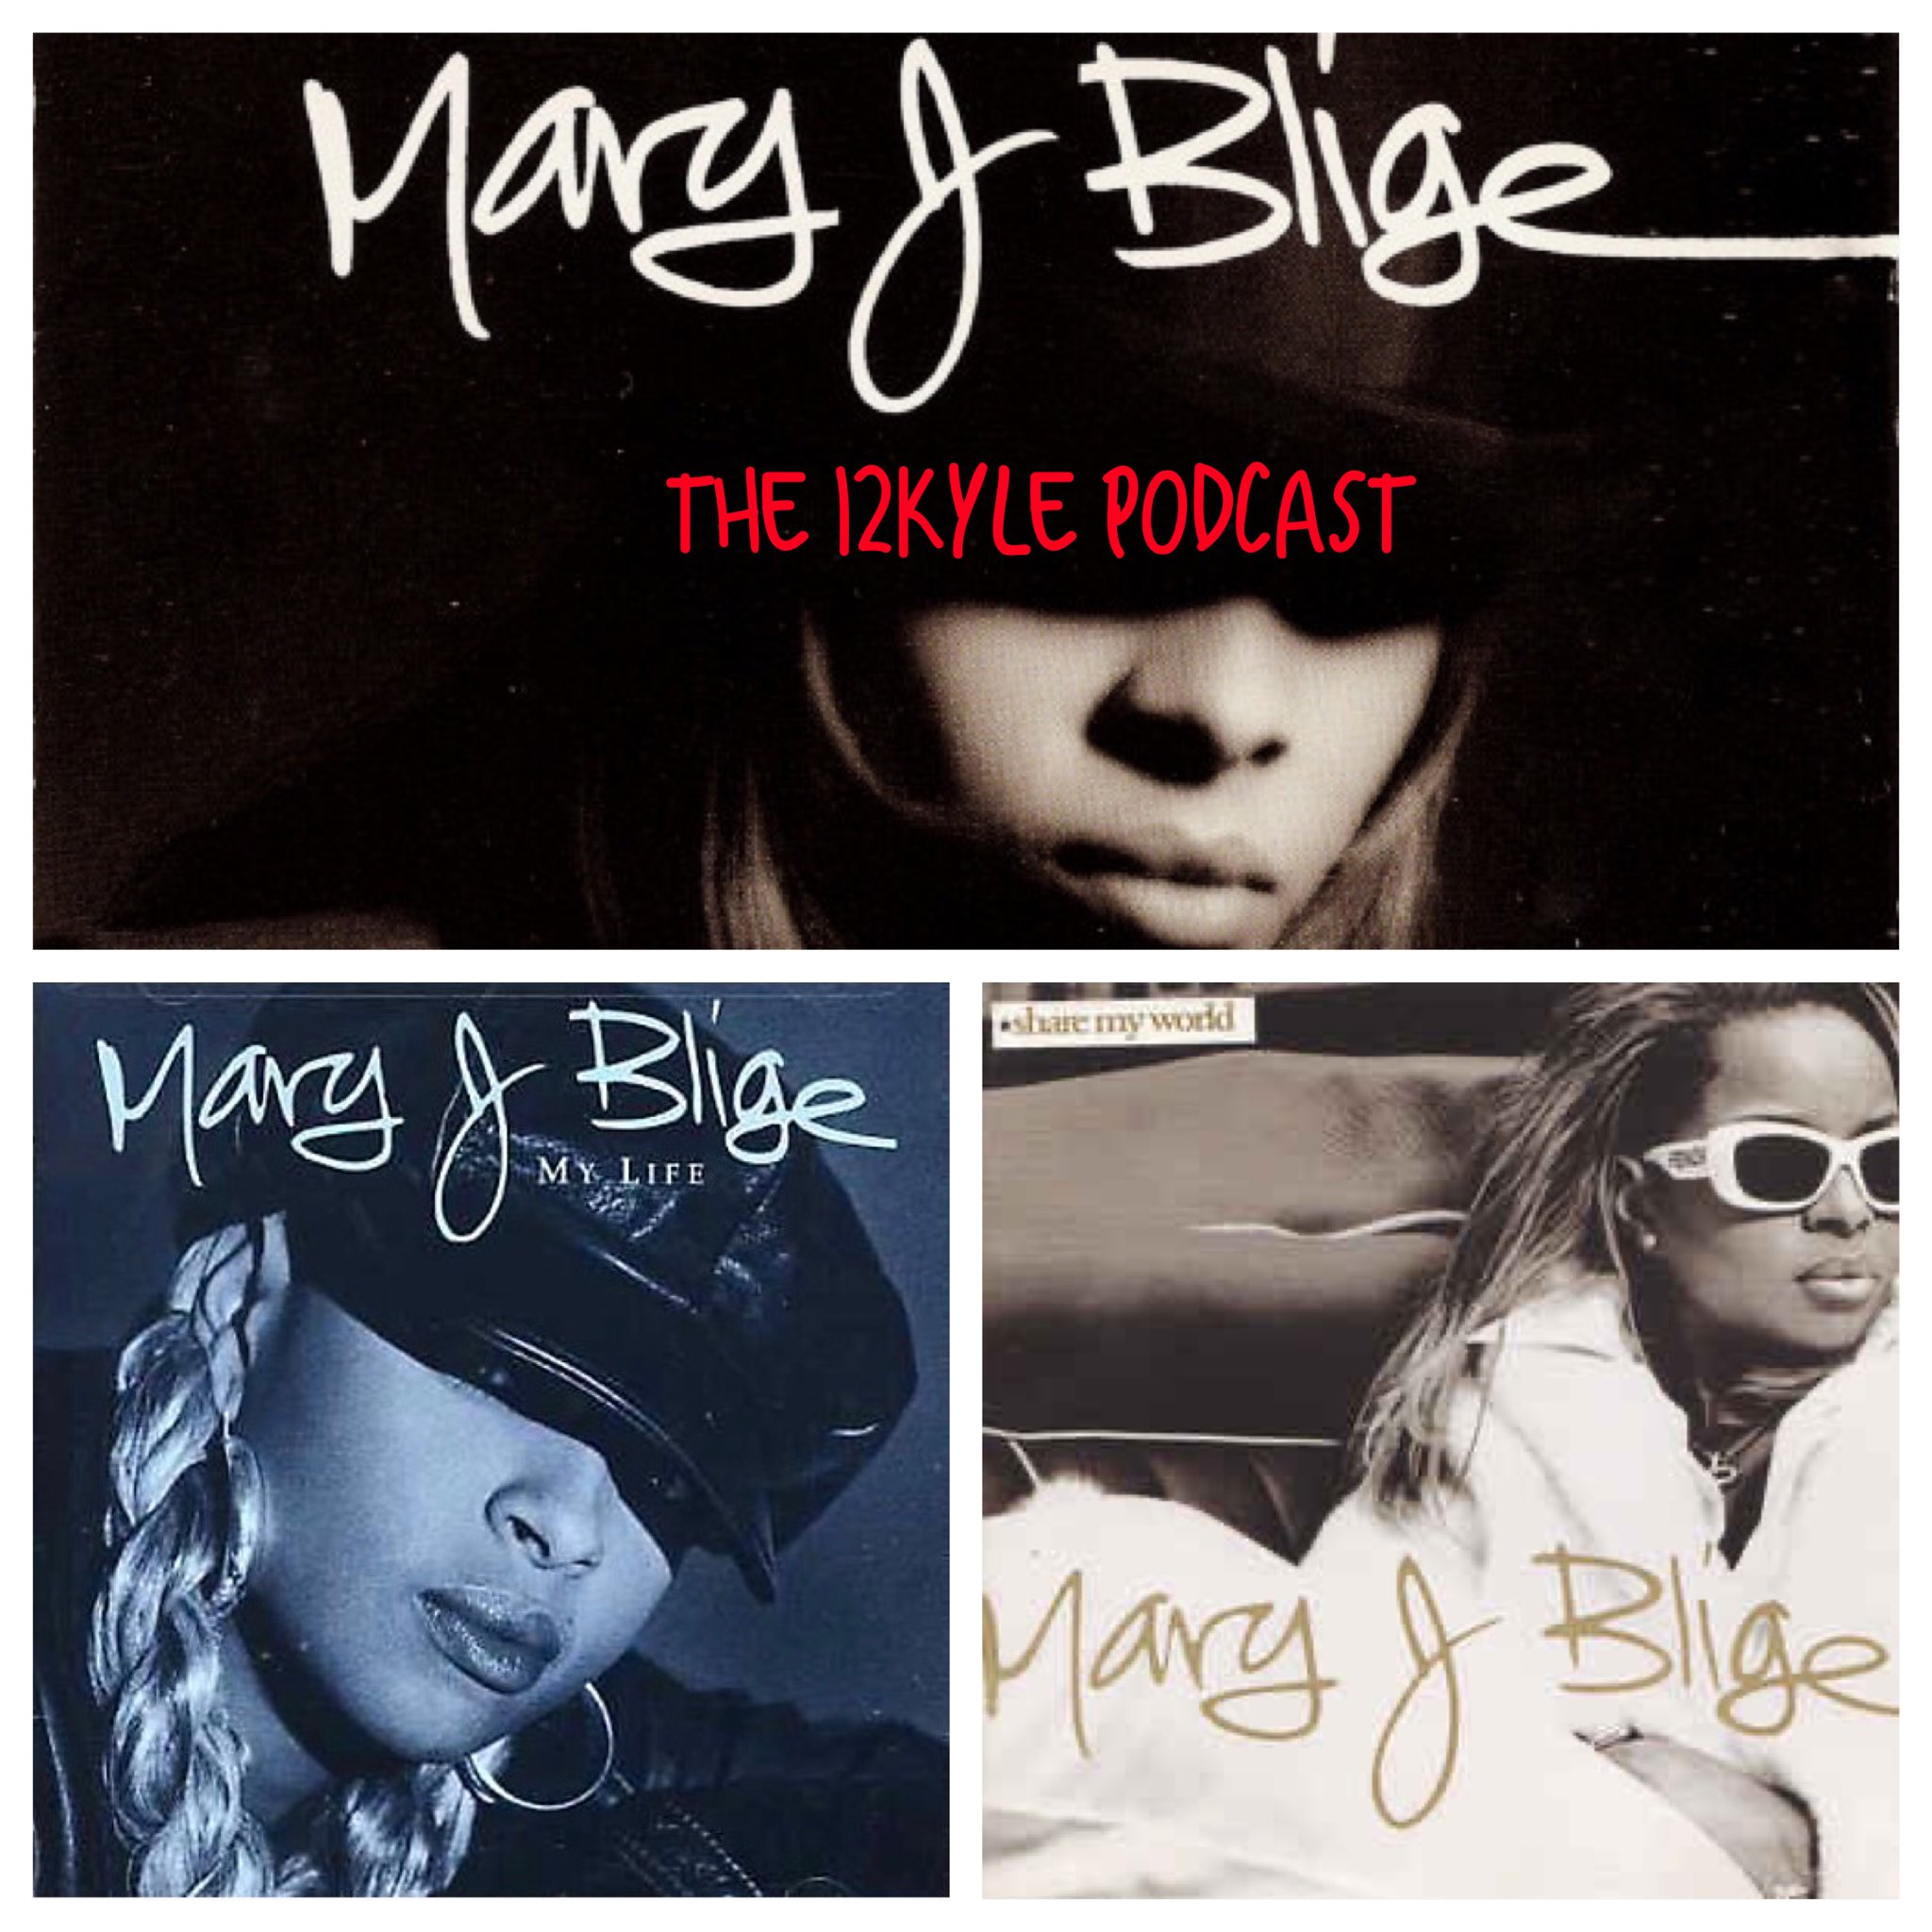 "On this week's episode of the @12kylepodcast we will talk about Mary J Blige's ""3Peat"" of consecutive ""championship"" albums. Her first 3 albums (What's the 411?, My Life, and Share My World) helped establish her as one of the greats from her era. 👇🏿next tweet... https://t.co/xFVj82L3V6"